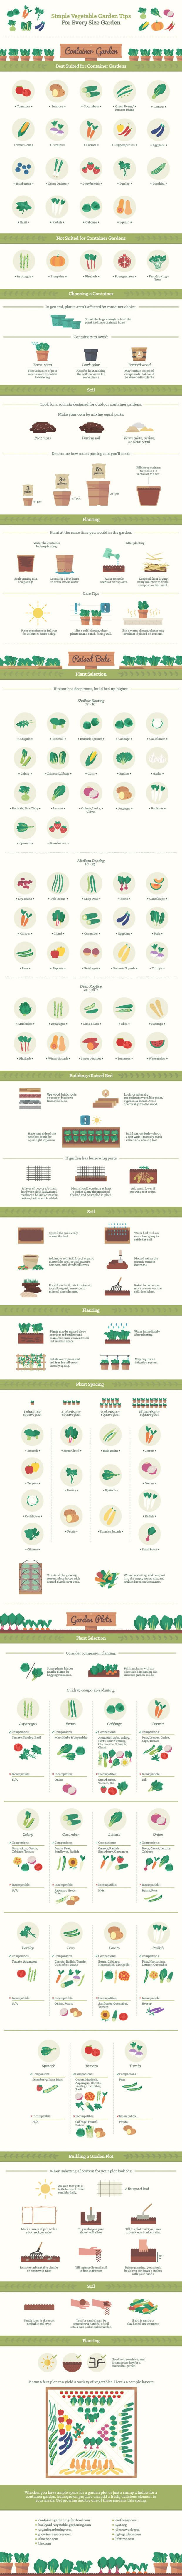 An Extensive Guide to Growing Vegetables   Mental Floss